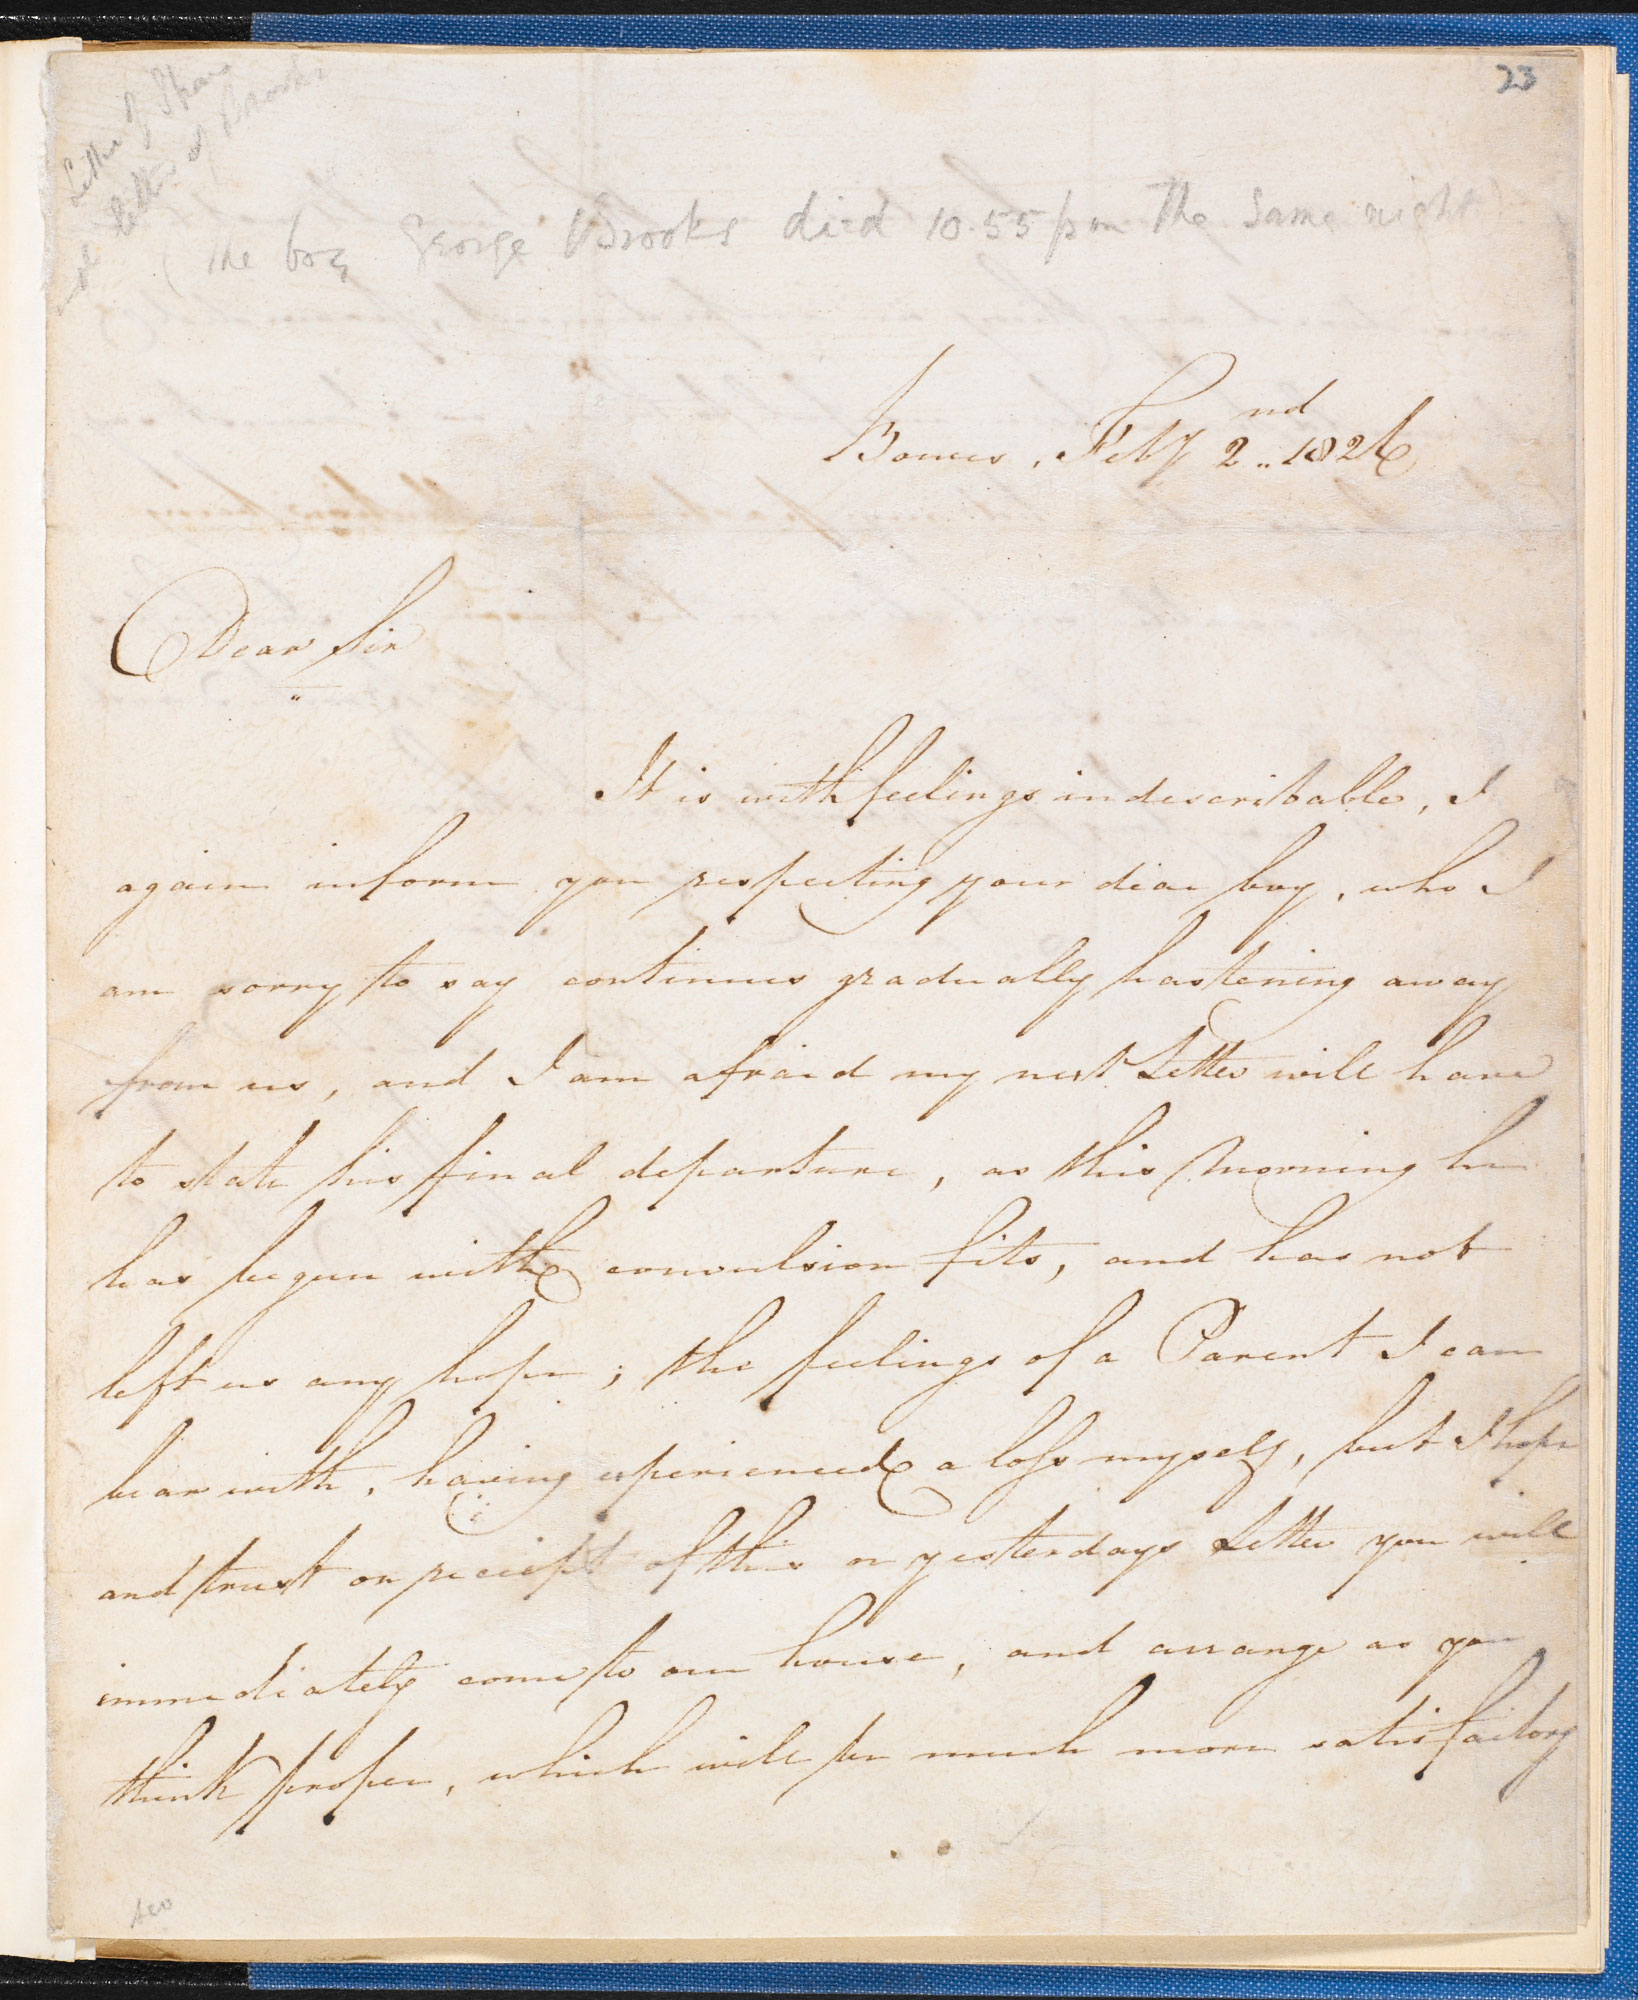 Two letters written from Bowes Academy, the Yorkshire school that inspired Charles Dickens's Nicholas Nickleby